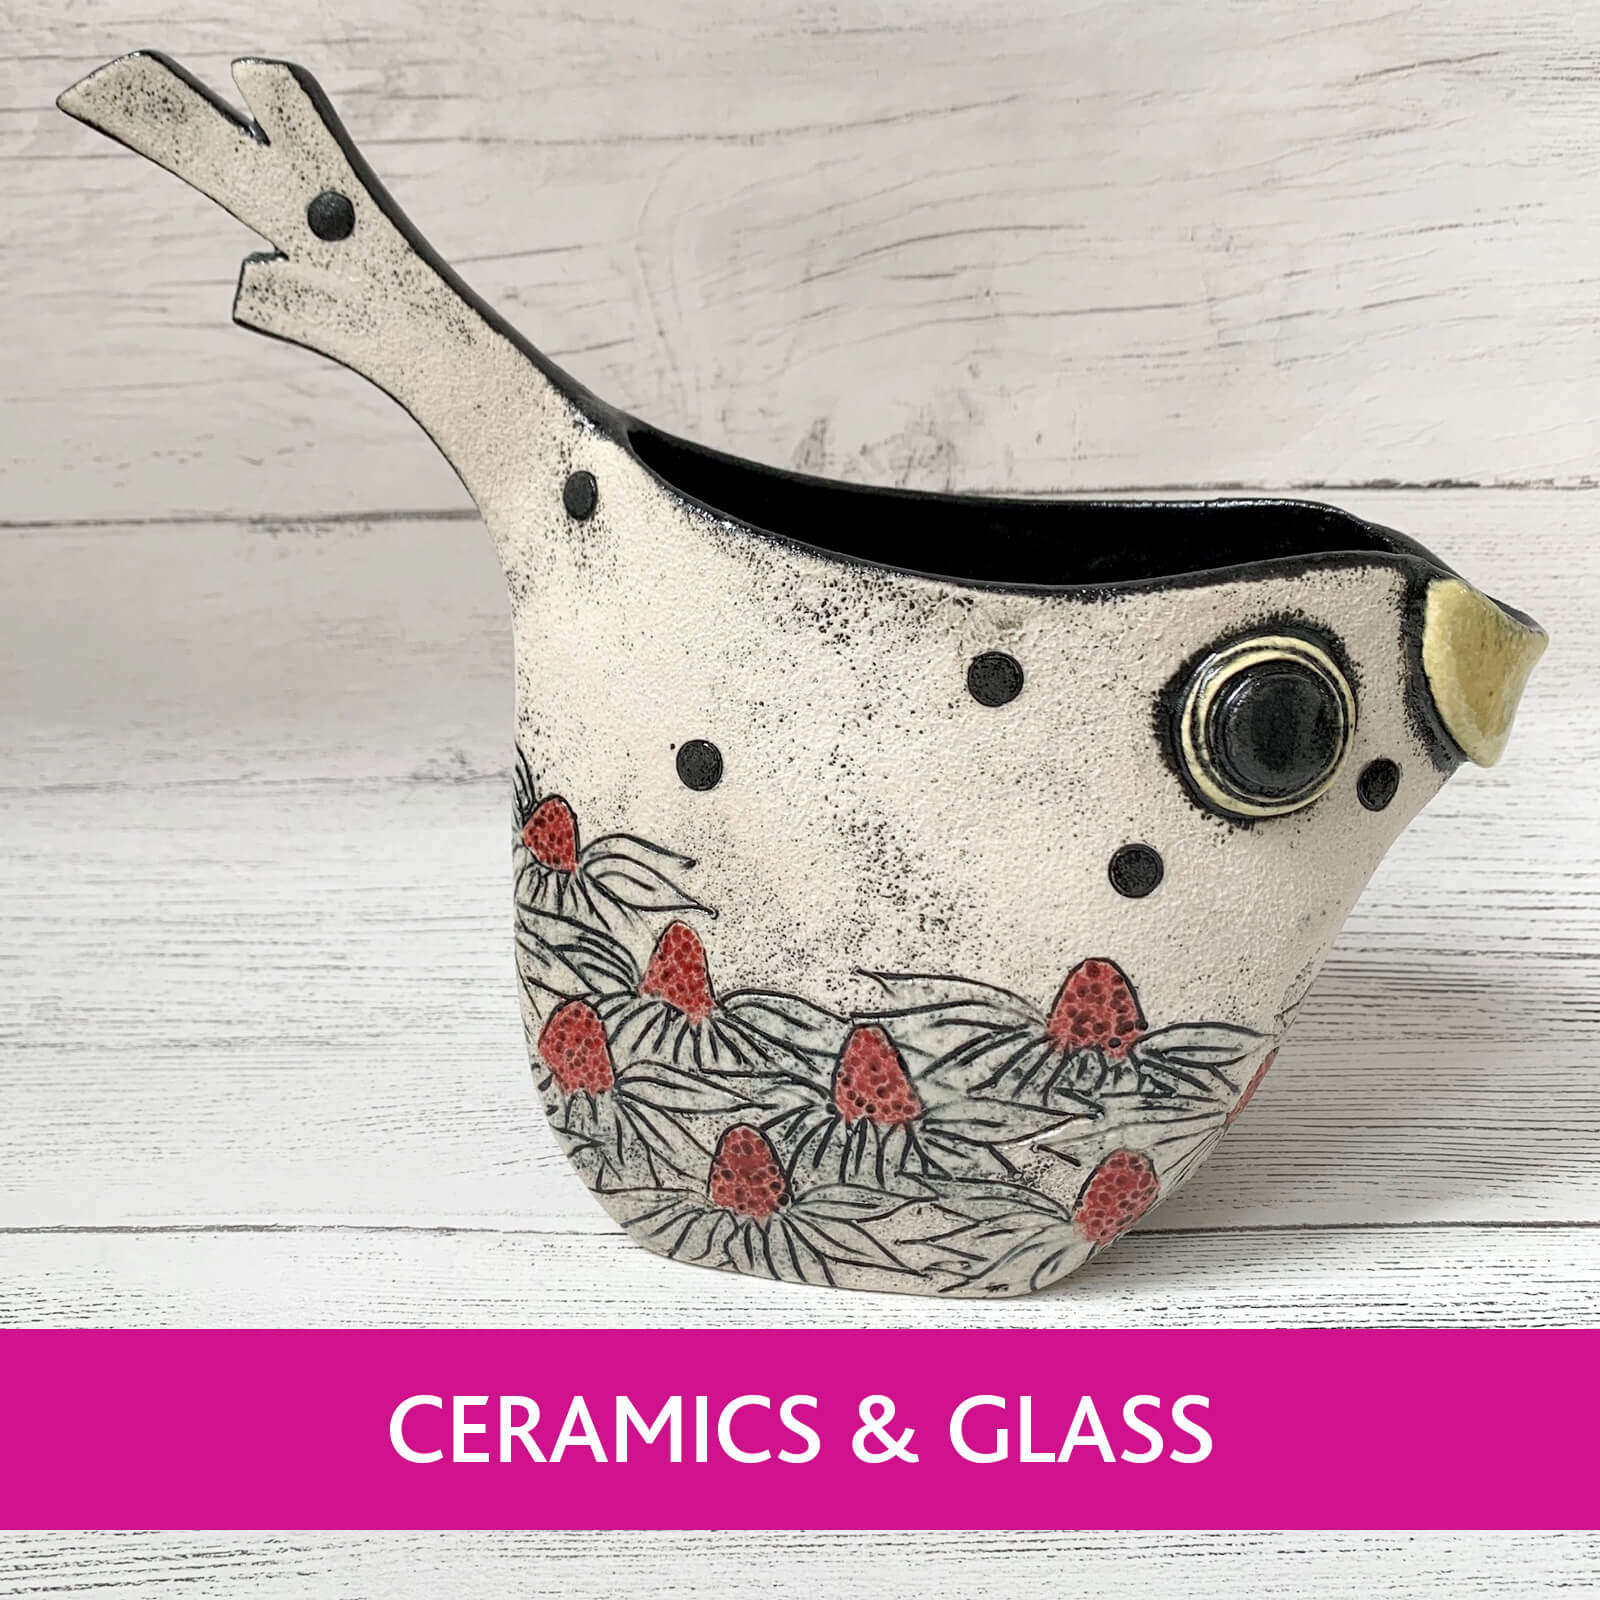 Ferrers Gallery, unique and handcrafted British made Ceramics and Glass Collection